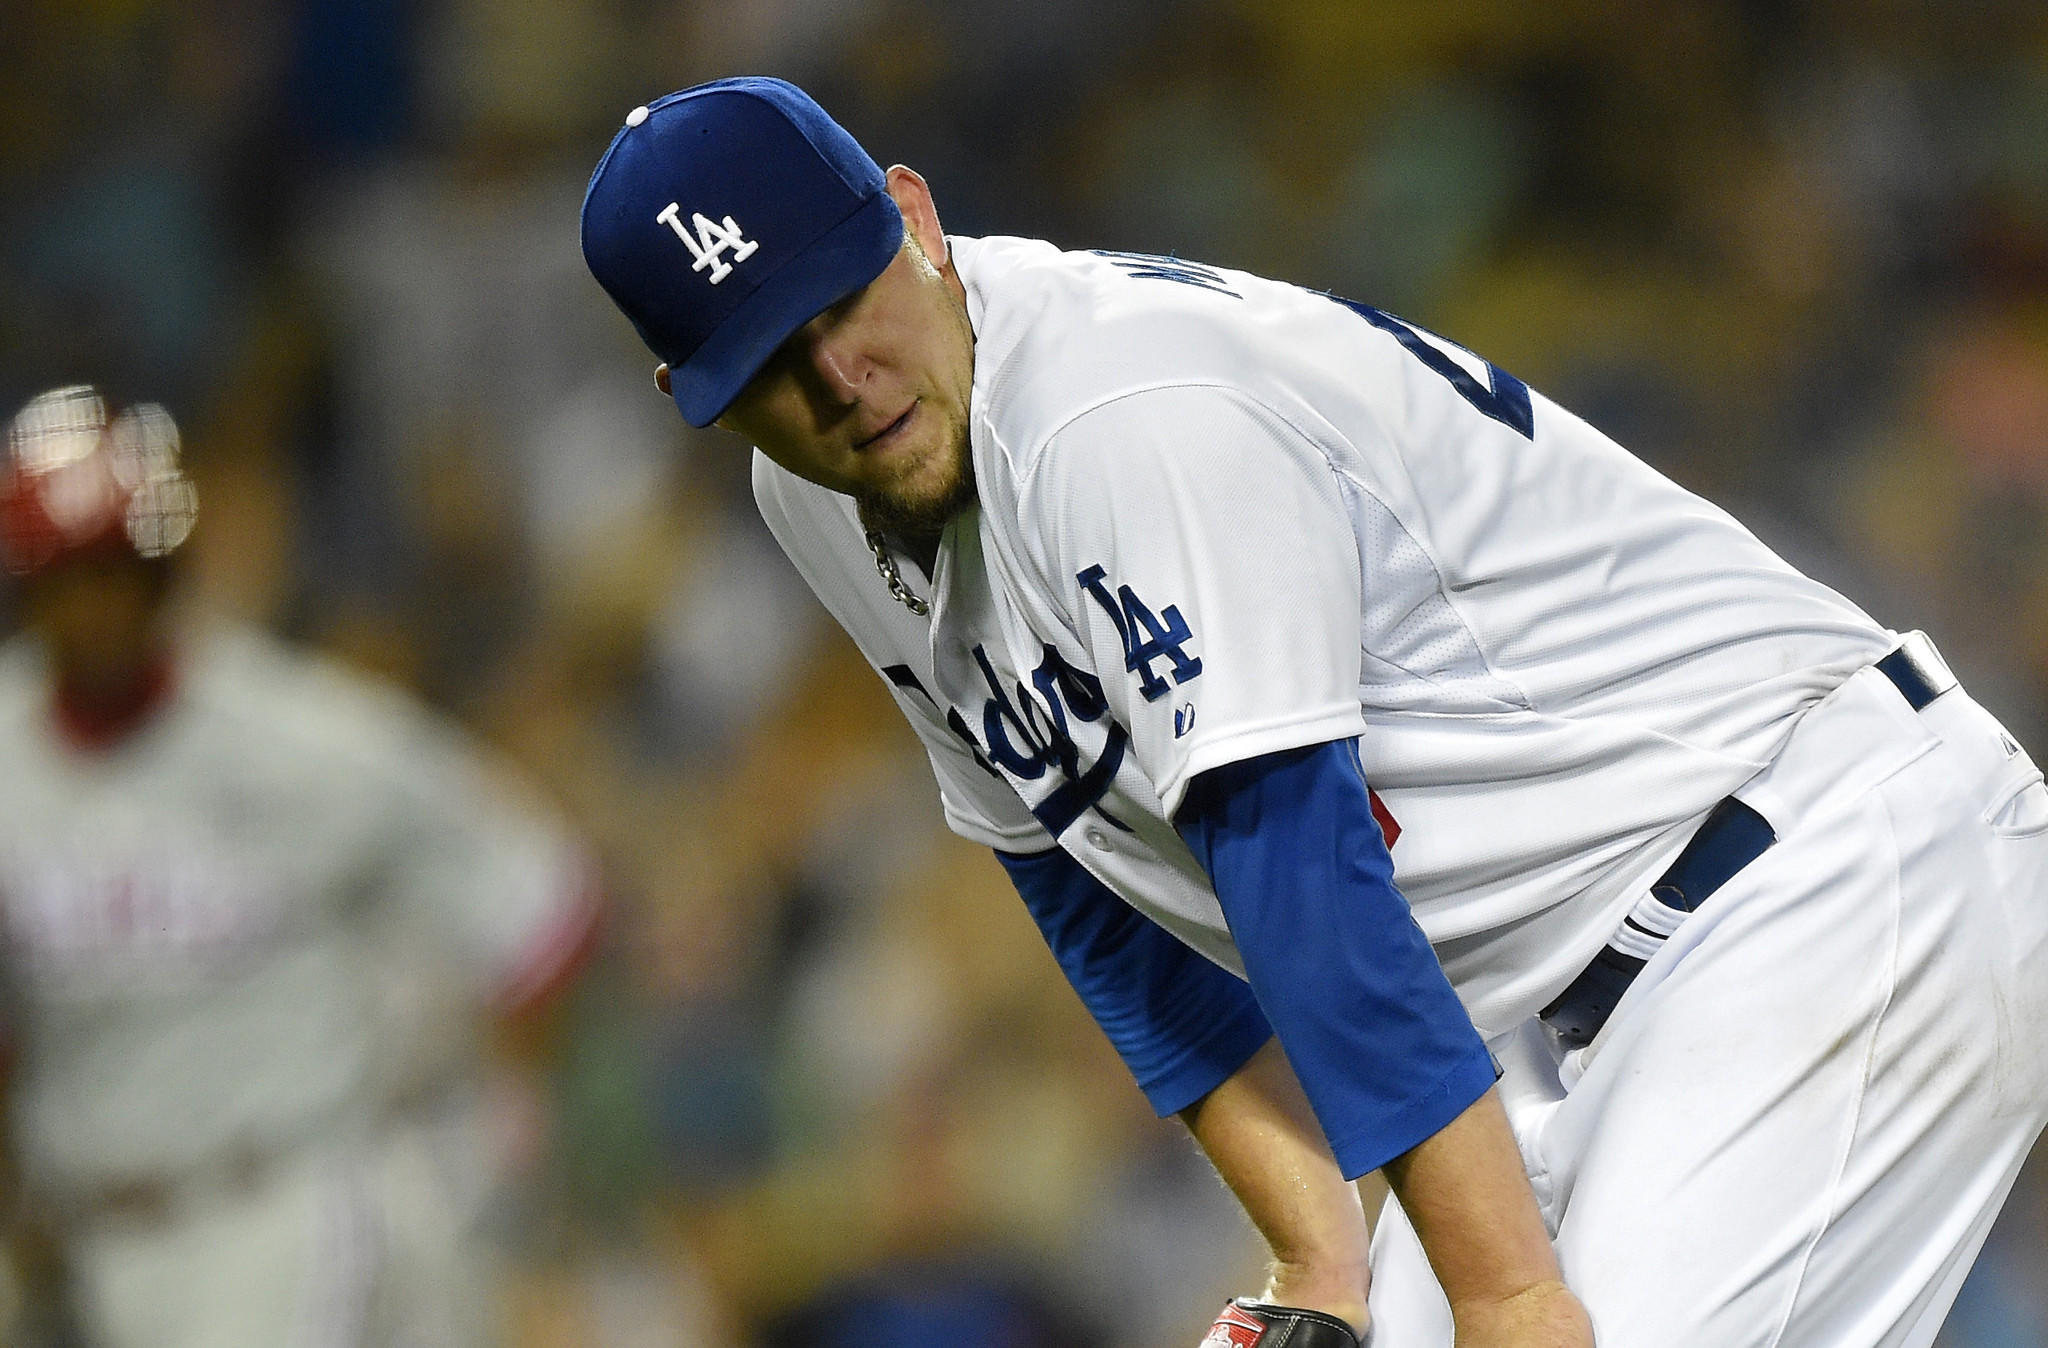 Dodgers starter Paul Maholm looks on after giving up a run on his throwing error to first base during the fifth inning of the Dodgers' 7-0 loss Monday at Dodger Stadium.